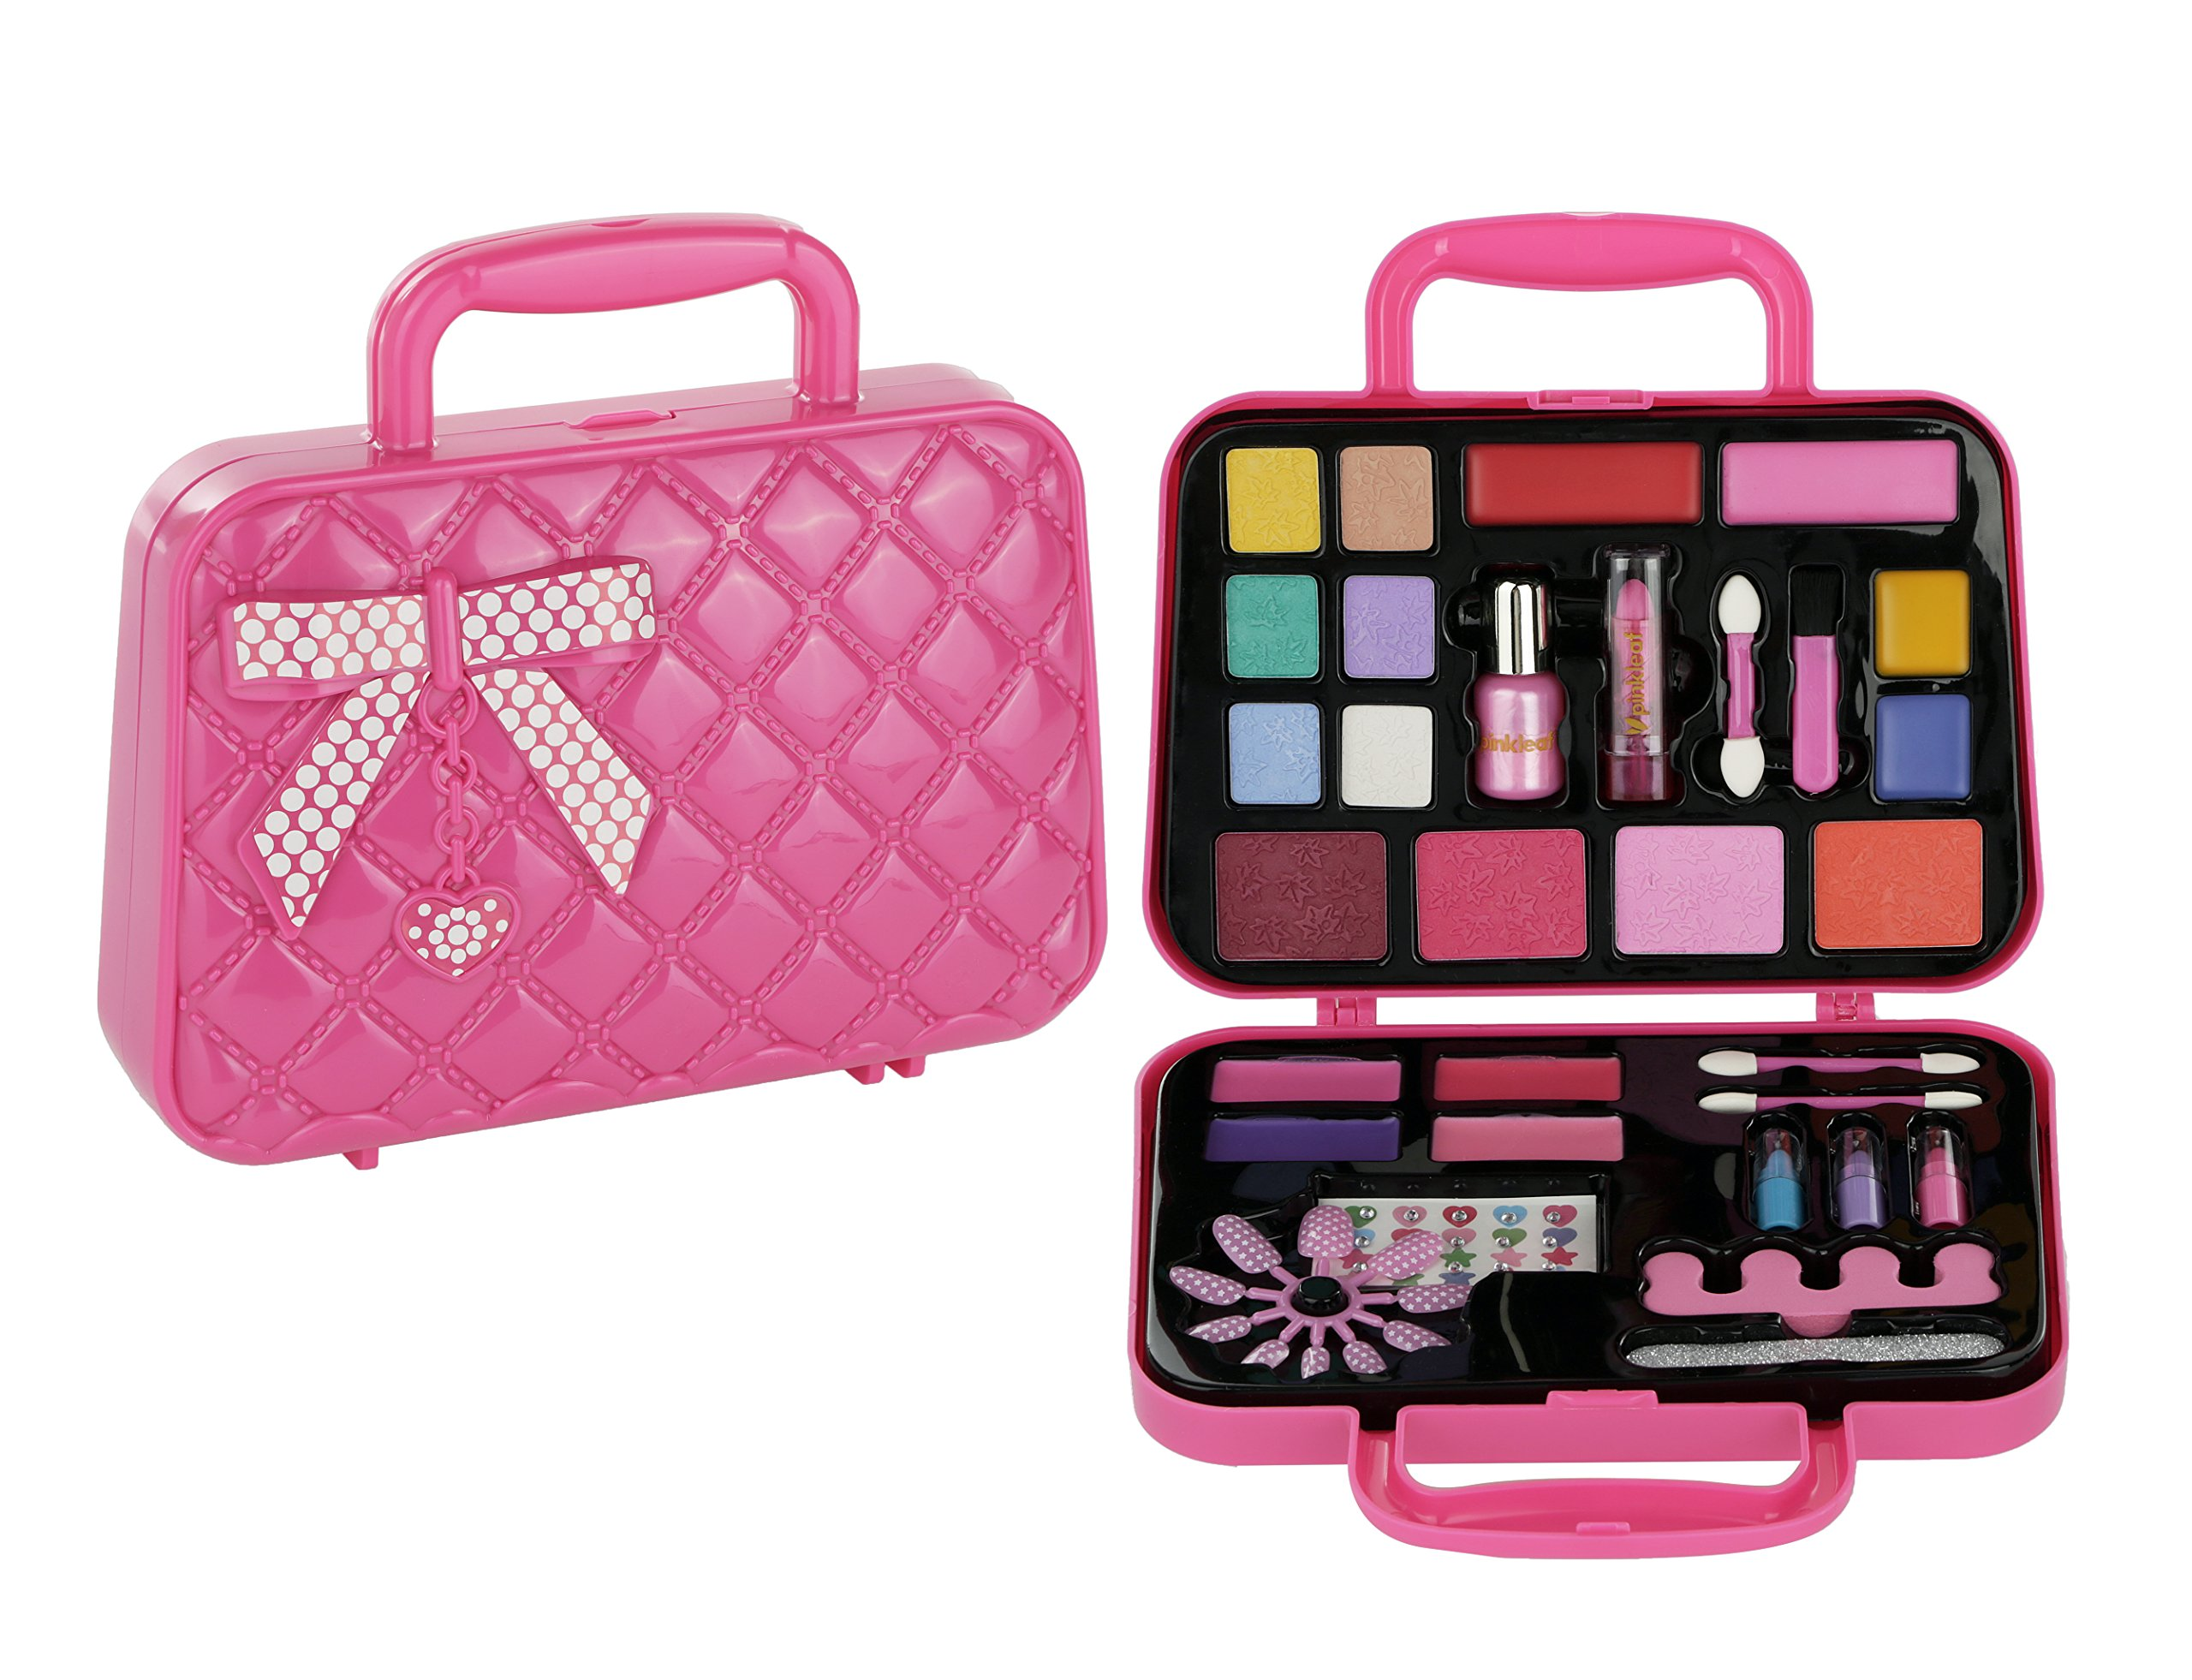 Pinkleaf Makeup Set & Nail Art Kit Duo Gift for Little Girls 3+ - Safe, Non-Toxic Kid Cosmetics, Manicure & Pedicure Tote Caboodle with Tools, Applicators & Accessories by Pinkleaf